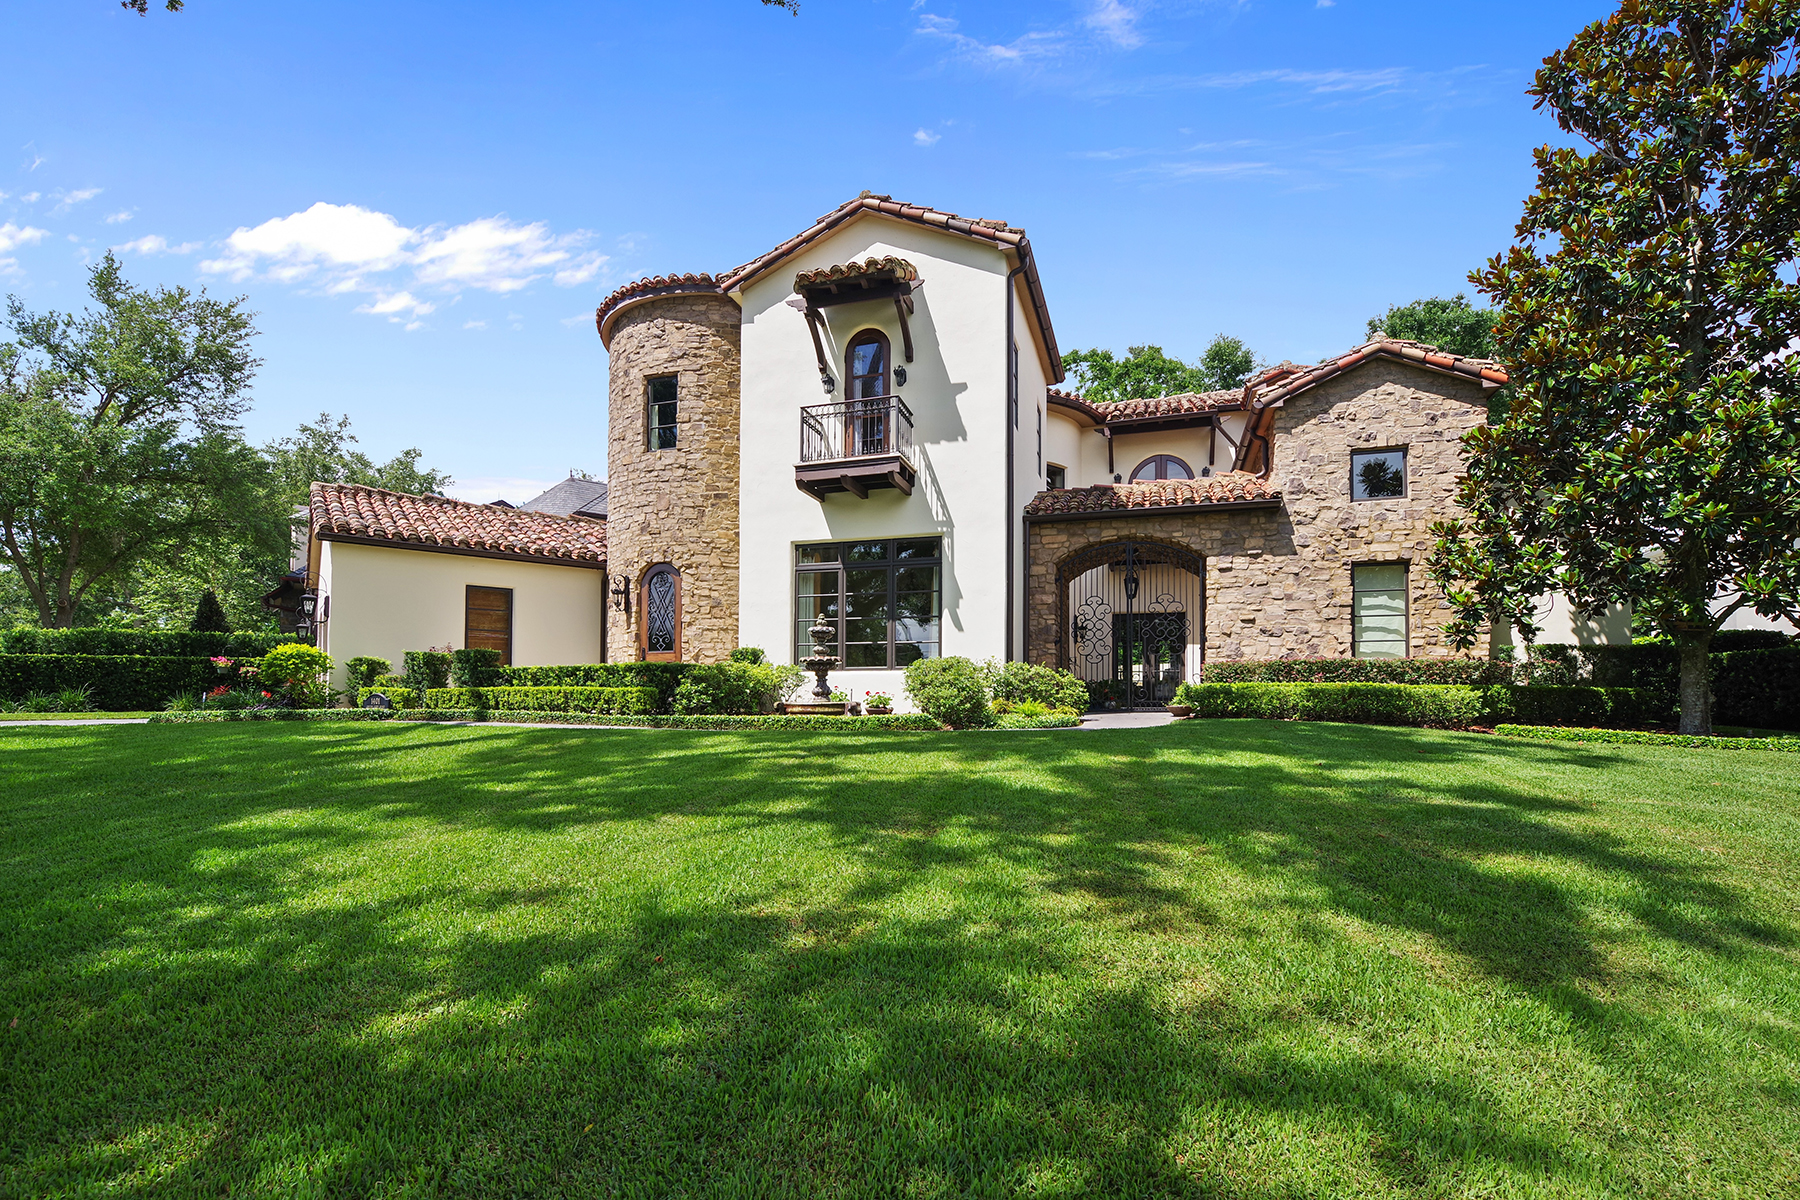 Single Family Homes for Sale at Winter Park 1401 Green Cove Rd Winter Park, Florida 32789 United States